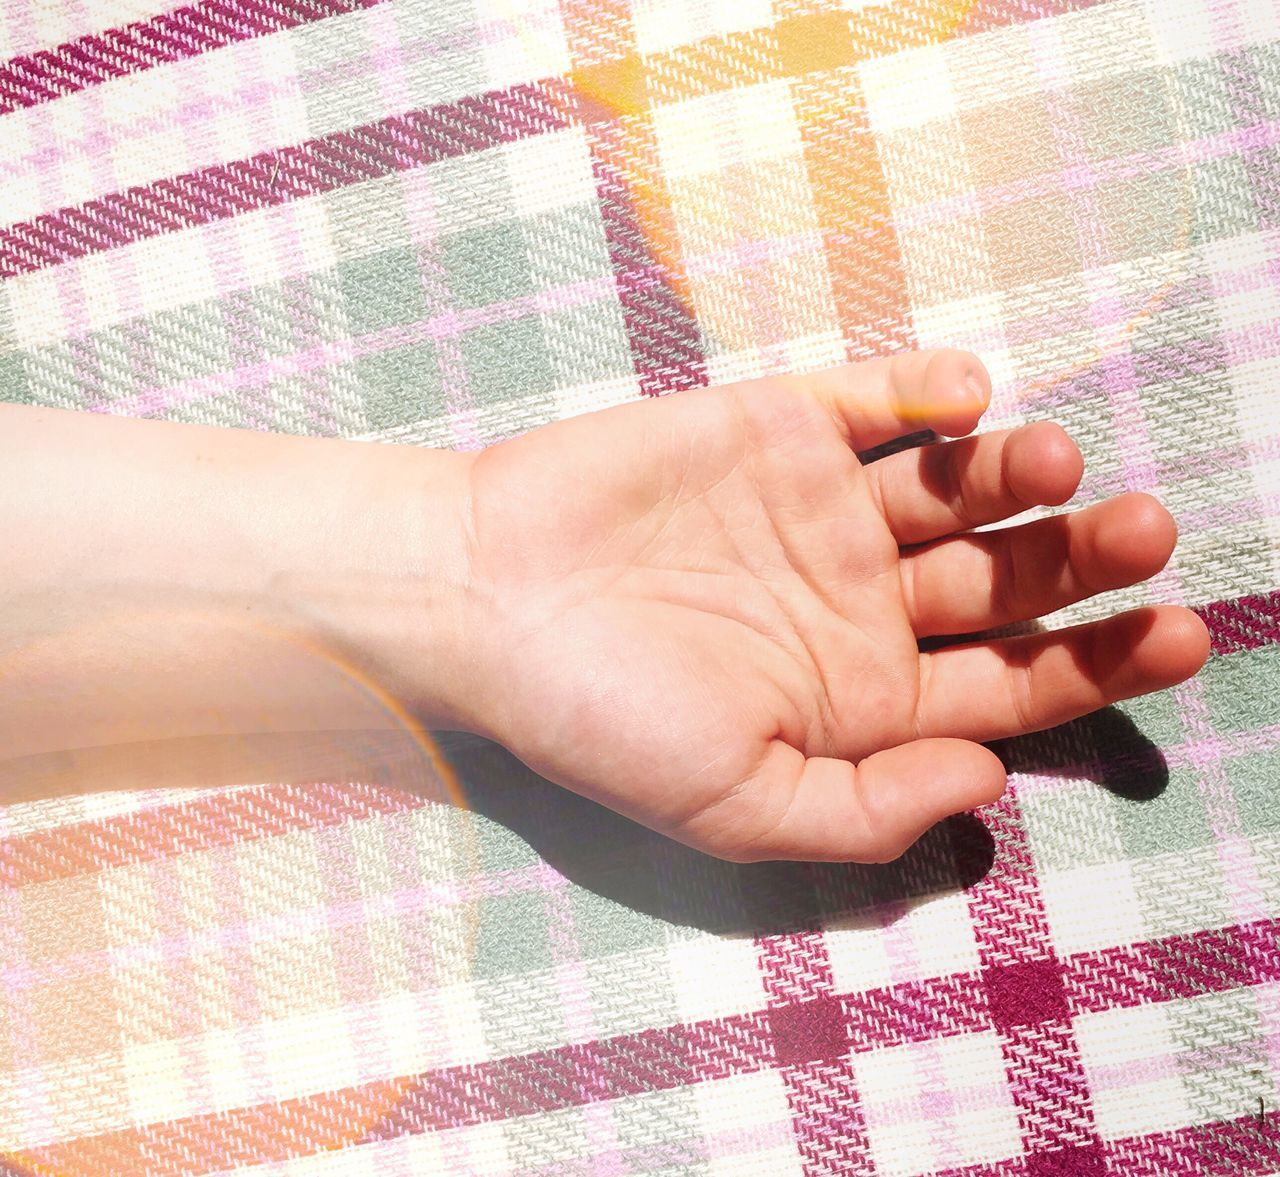 Summer Plaid // iPhone 6s // Checked Pattern Pattern One Person Human Body Part Human Hand Day Close-up Adult Hand Summer Sunshine Bokeh Sunlight Skin Abstract Contrast ShotOnIphone ShotoniPhone6s This Week On Eyeem Summer Photography Orange Purple Green Hands